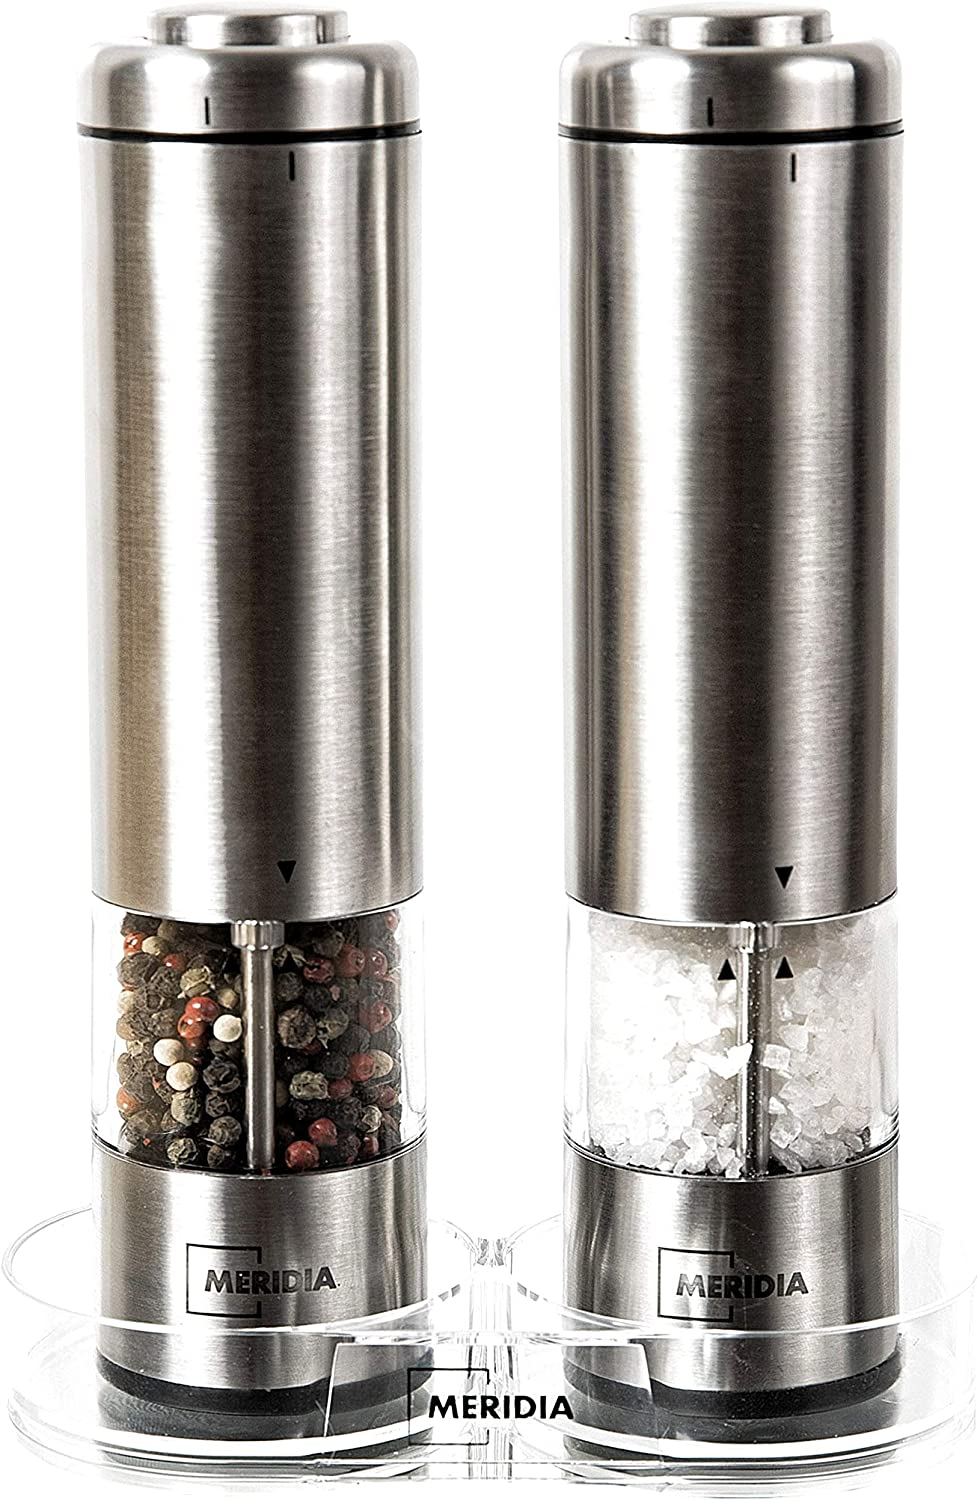 Meridia Electric Salt and Pepper Grinder Set - Battery Operated Kitchen Mills (Batteries Included) - Stainless Steel Peppermills with Light and Adjustable Coarseness